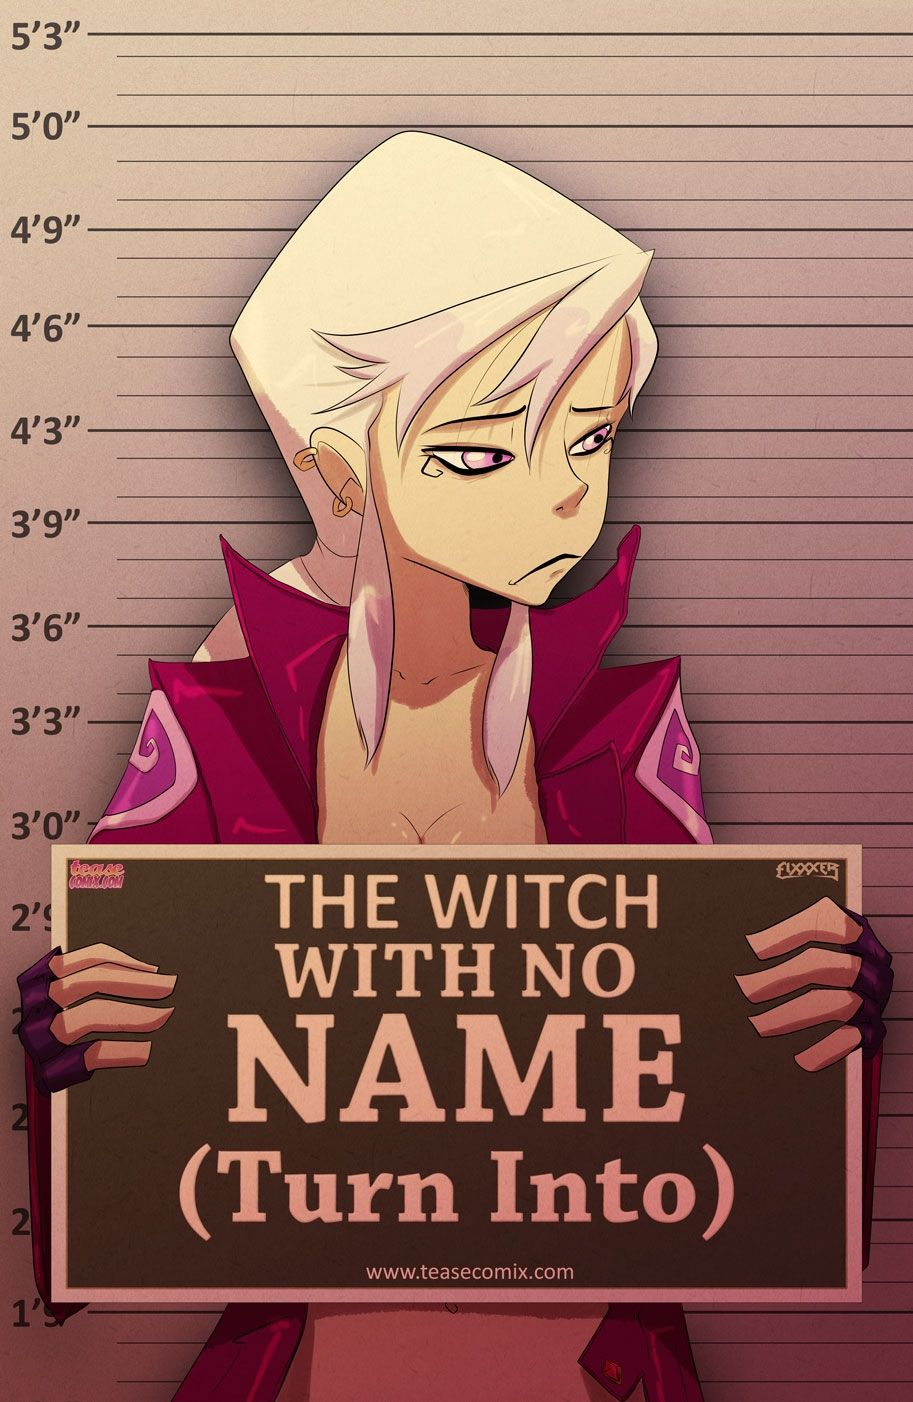 Witch With No Name (Turn Into)- Fixxxer image 1